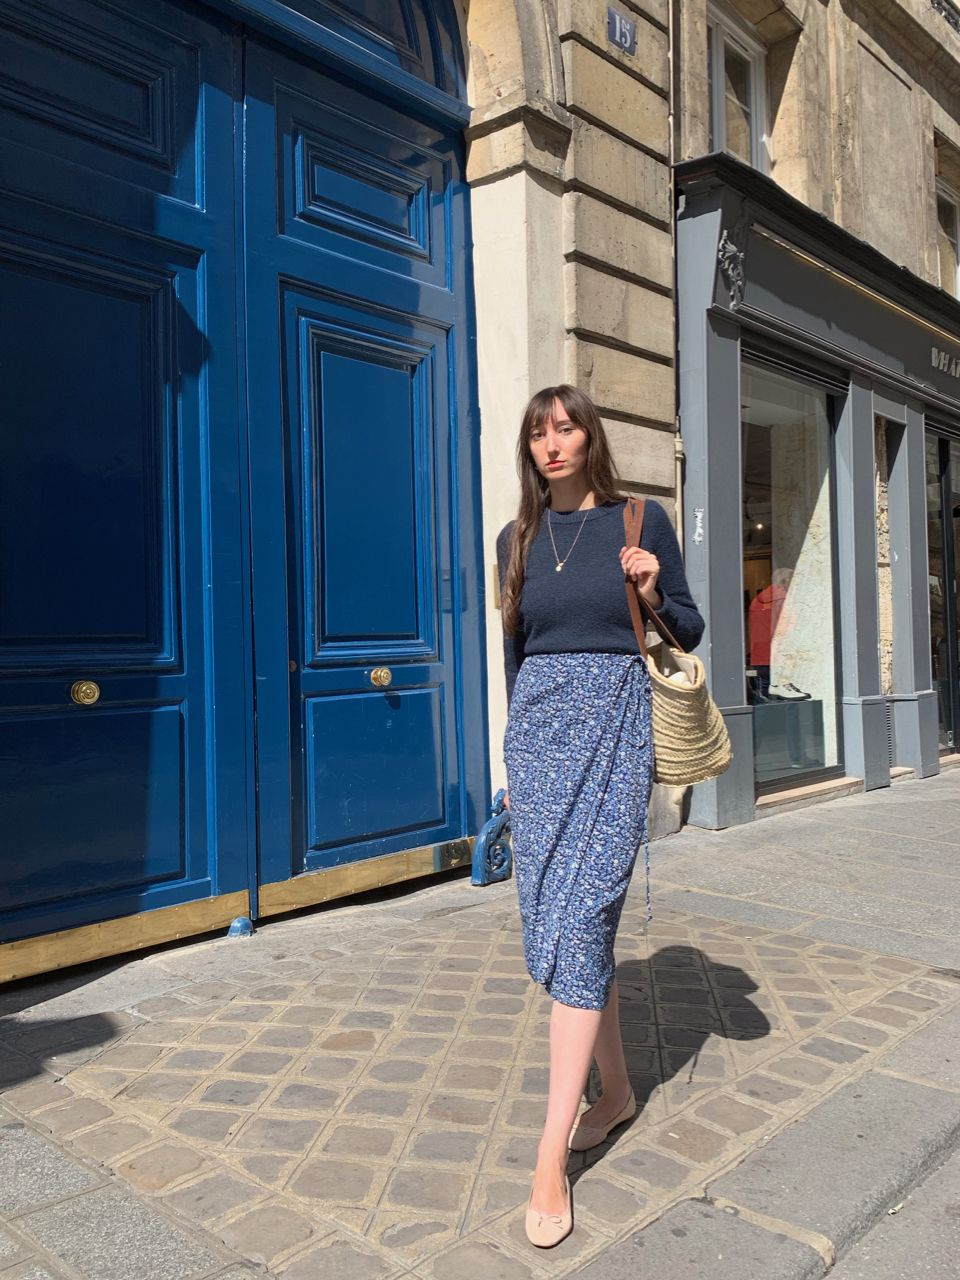 Early Fall Parisian Looks - COS sweater and Petite Chineuse skirt